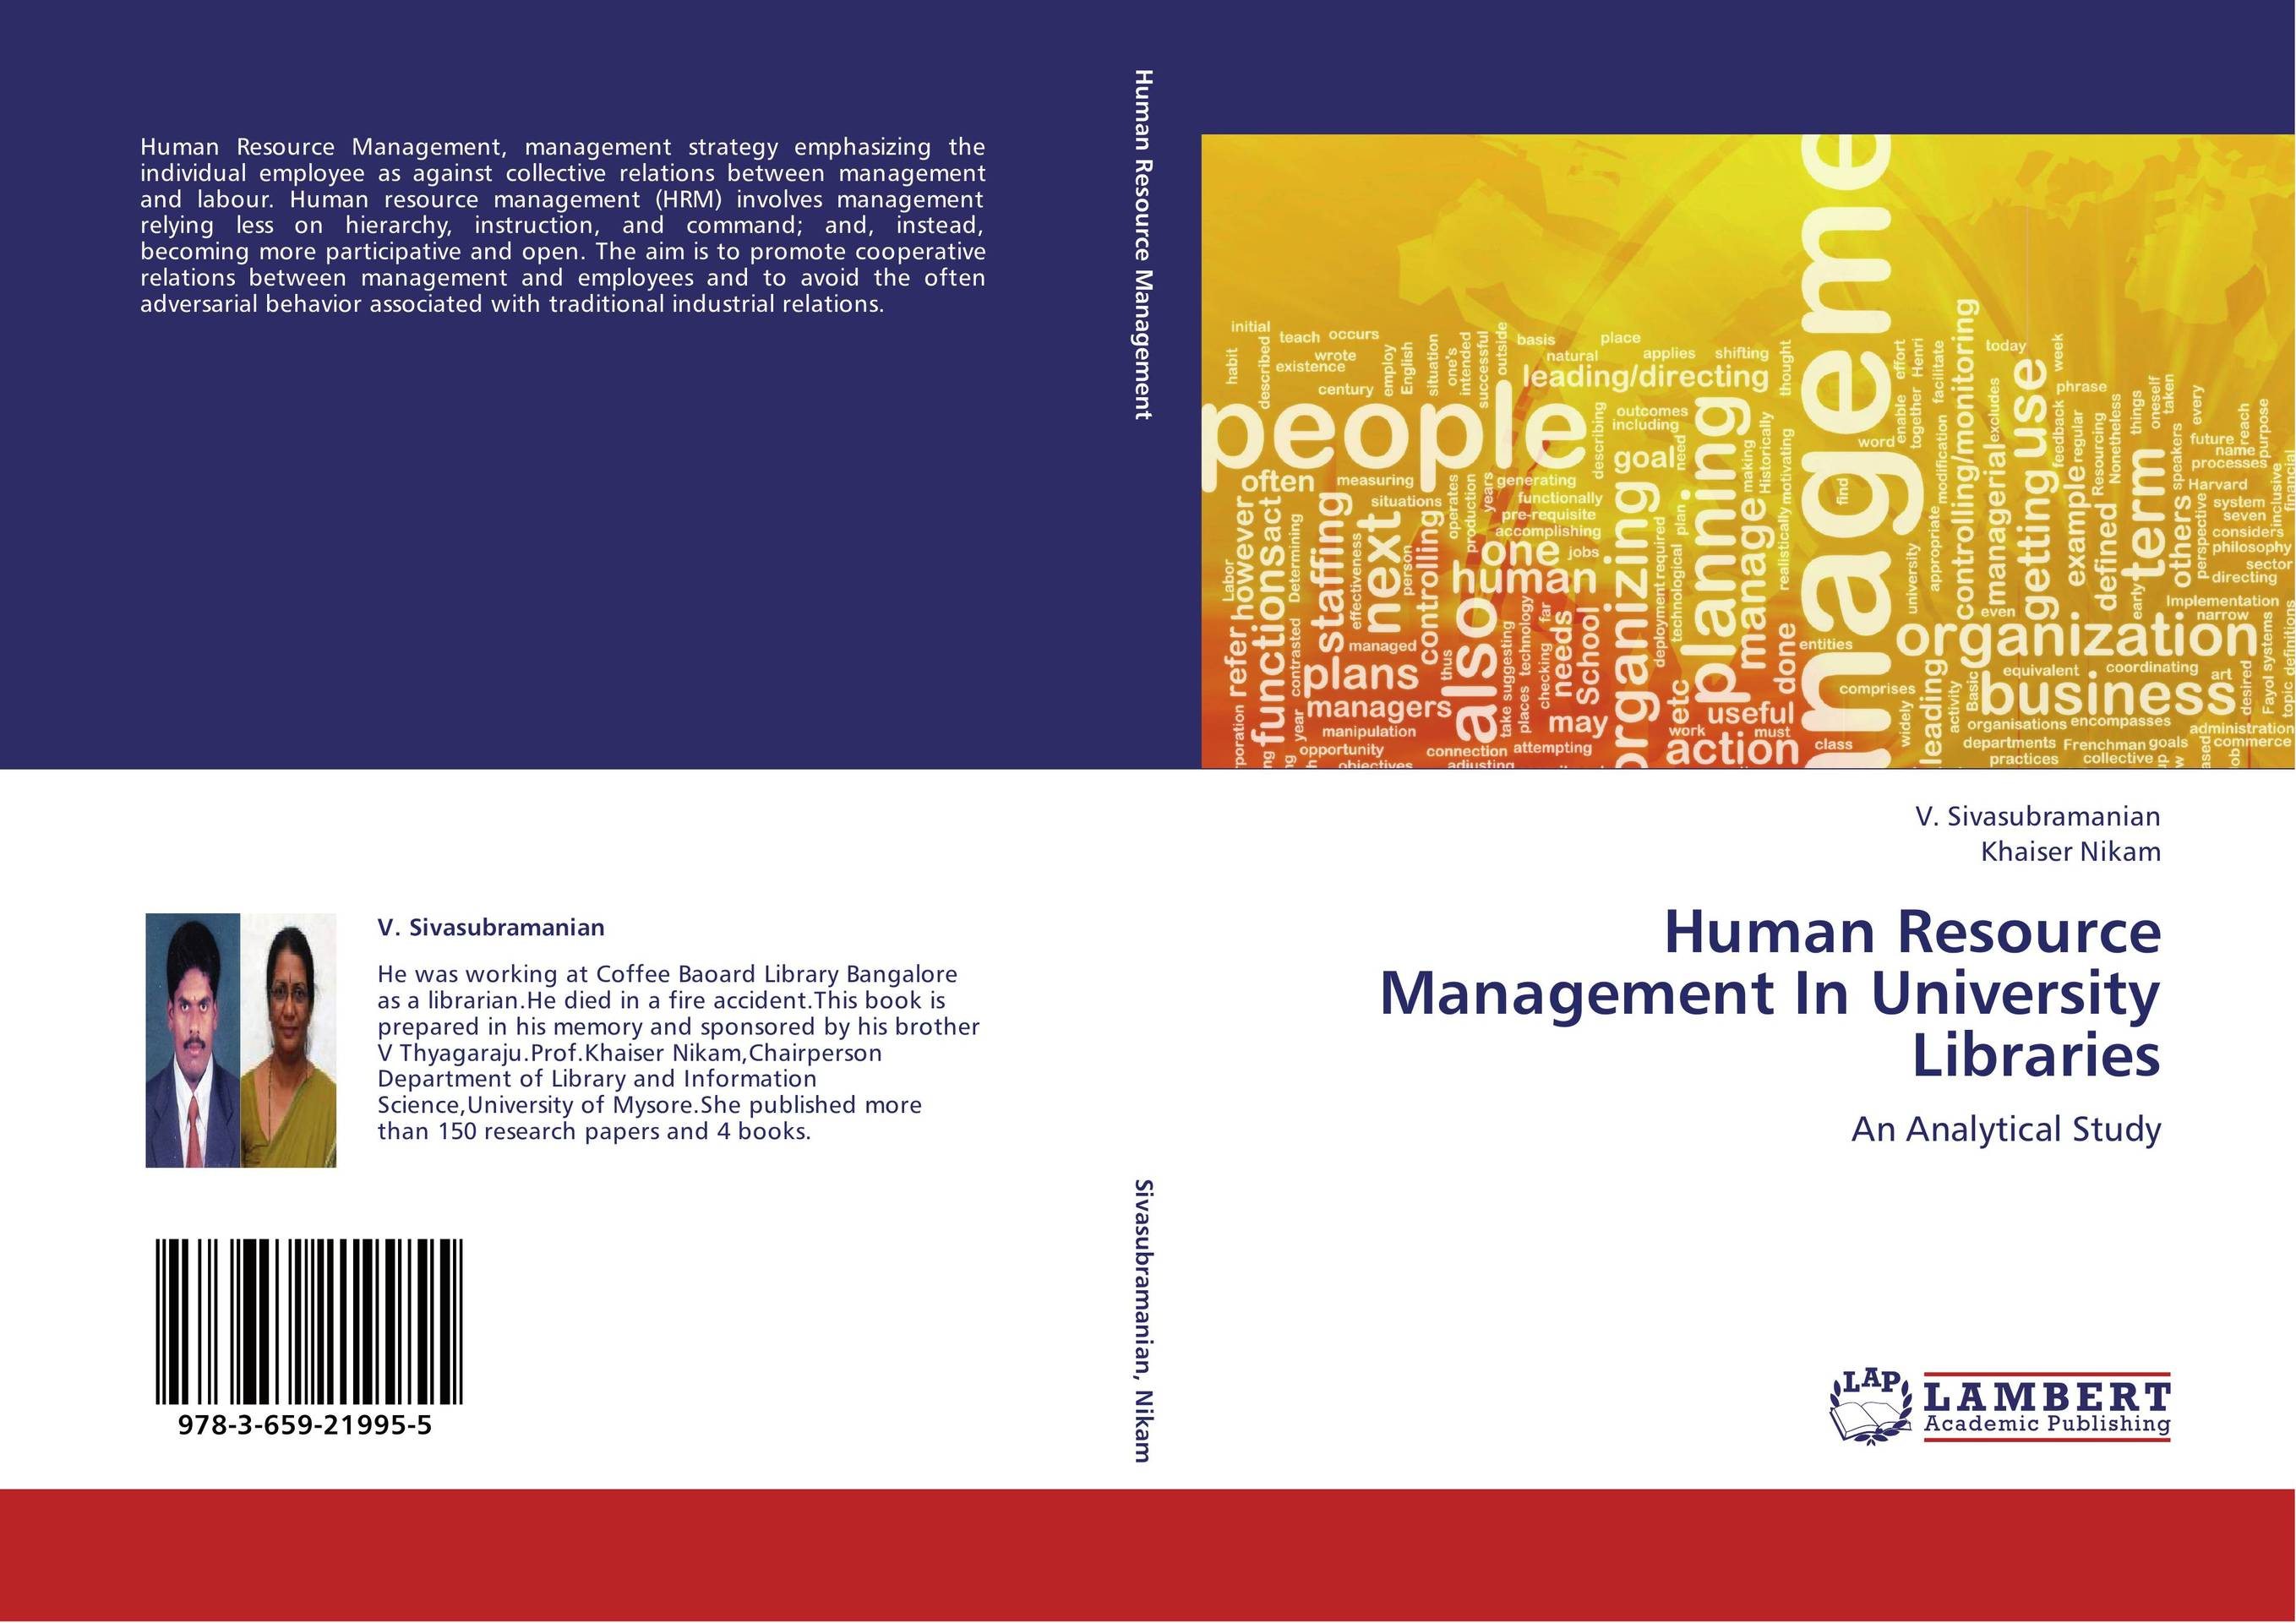 managing human resources case studies Human resource management: a case study approach is ideal for all hr students with limited real-life experience of hr in the workplace covering all the essential hr topics including recruitment, reward, performance management, employment relations, health and safety and equality and diversity, this book expertly uses case studies of these.